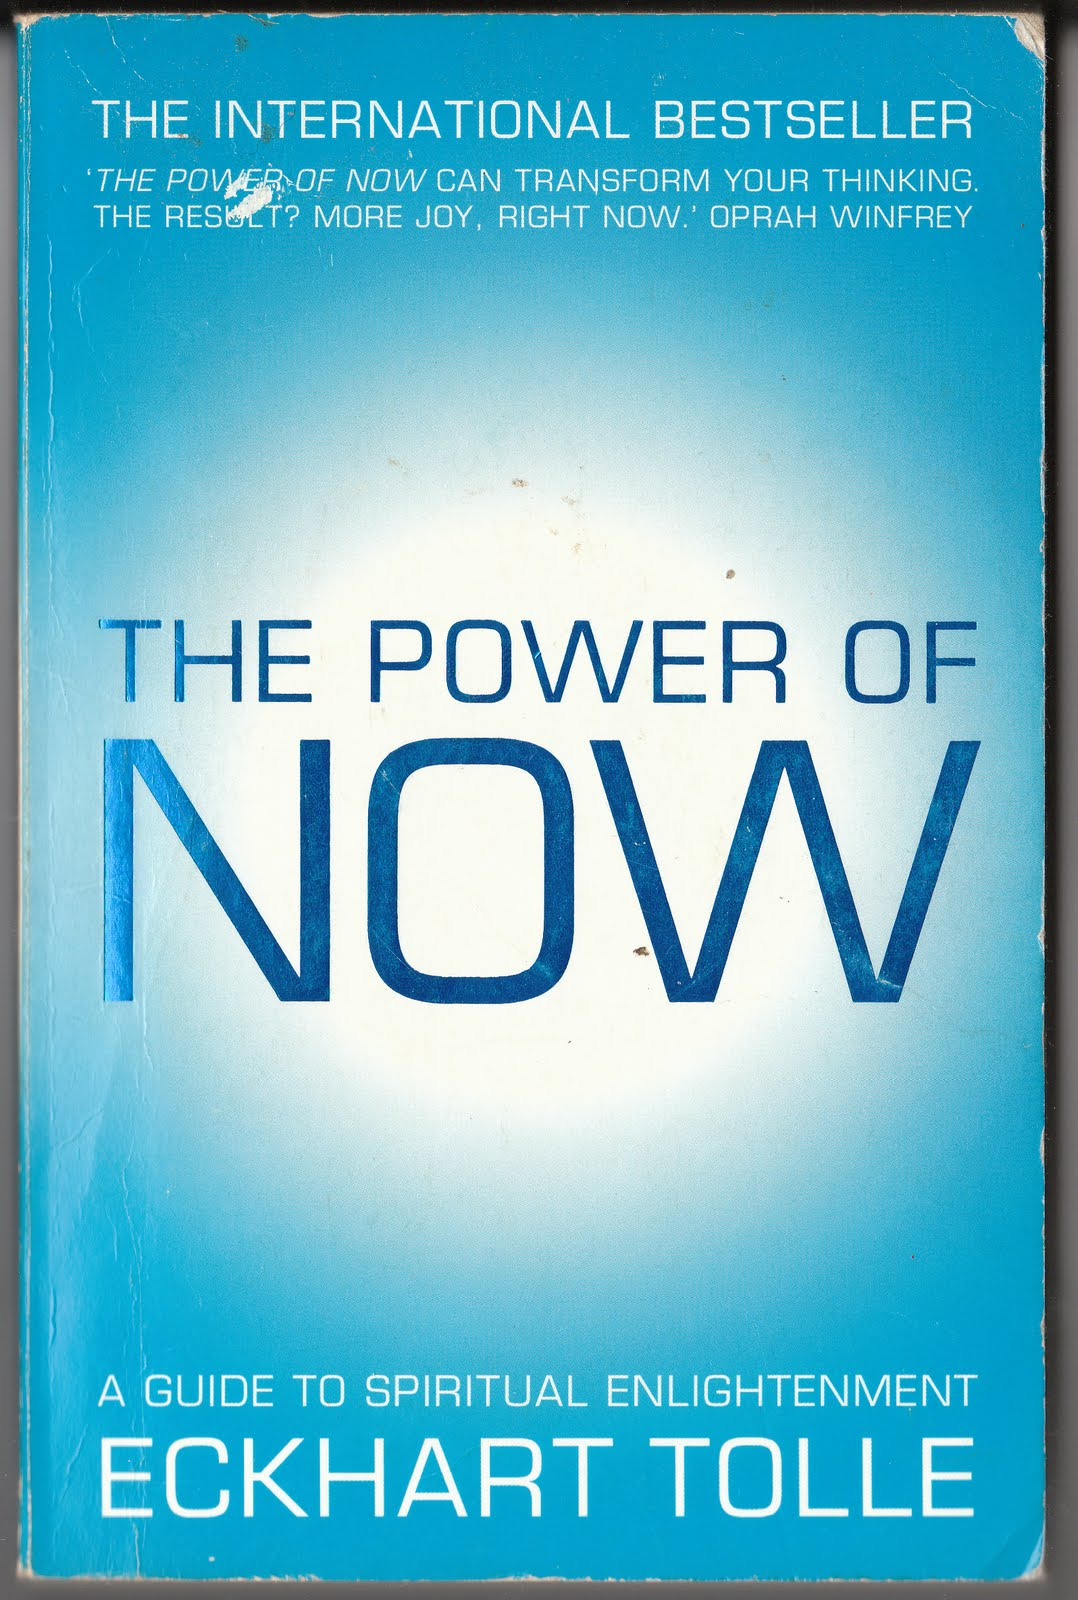 power of now The power of now: a guide to spiritual enlightenment is a book by eckhart tollethe book is intended to be a guide for day-to-day living and stresses the importance of living in the present moment and avoiding thoughts of the past or future.